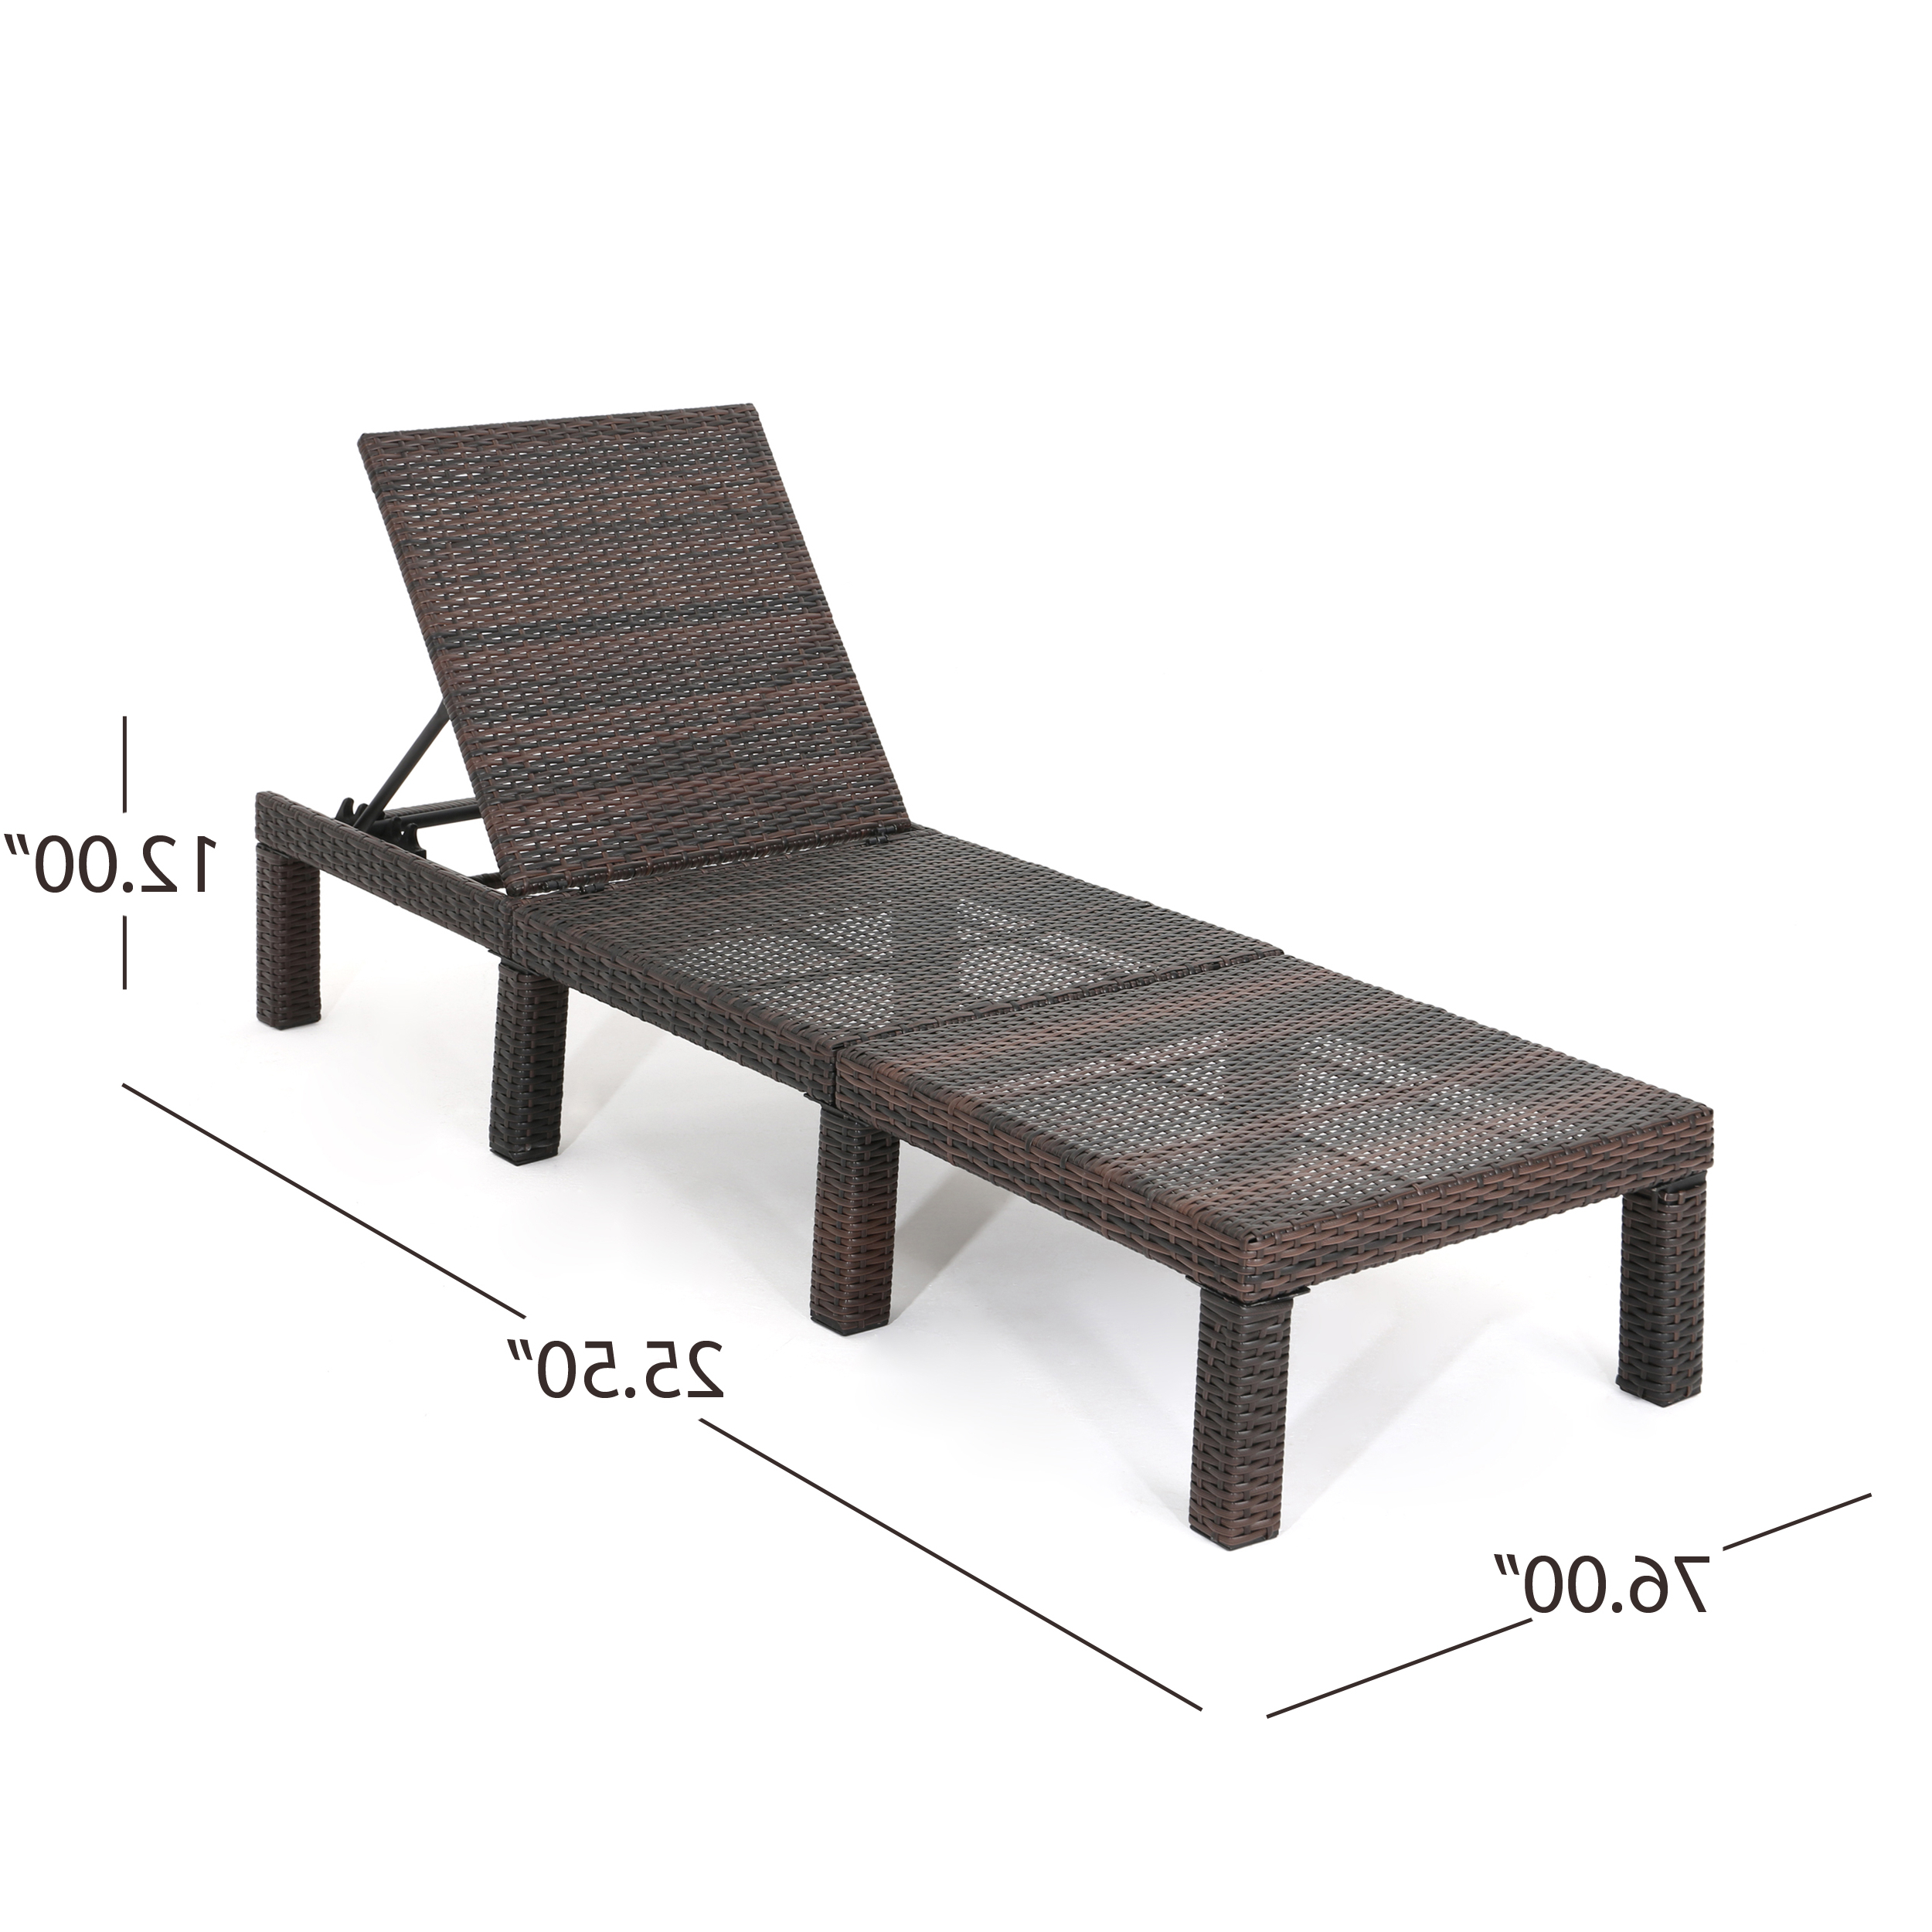 Favorite Details About Joyce Outdoor Wicker Chaise Lounge With Water Resistant  Cushion Throughout Resin Wicker Aluminum Multi Position Chaise Lounges (View 7 of 25)